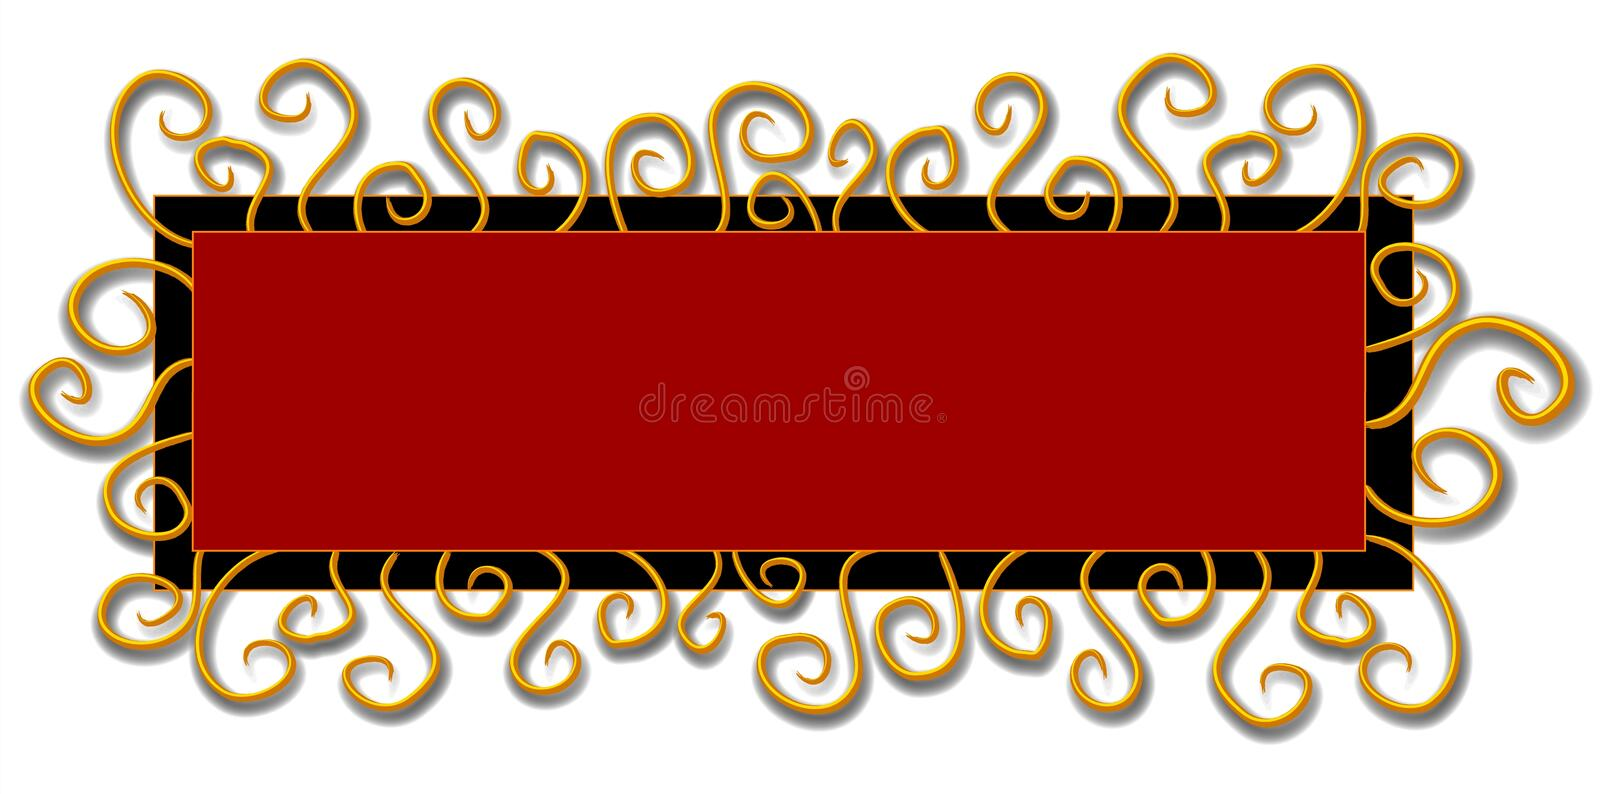 Web Page Logo Black Red Swirls vector illustration